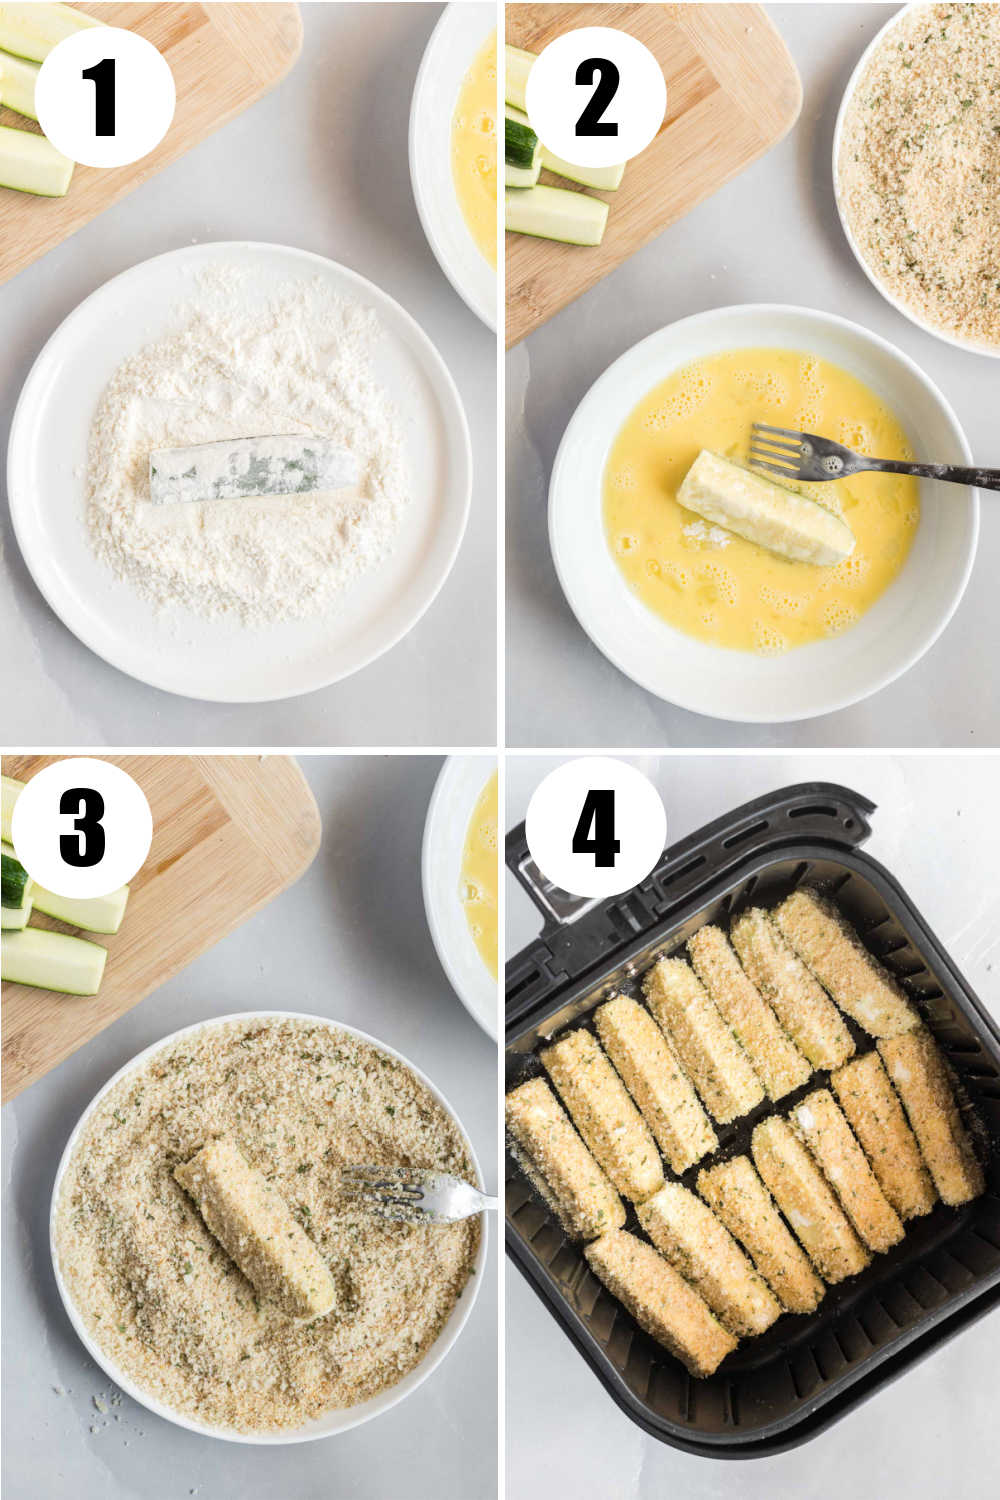 Four image collage. Top left, zucchini dipped in flour.  Top right, zucchini dipped in egg. Bottom left, zucchini dipped in breadcrumbs. Bottom right, breaded zucchini in air fryer basket.